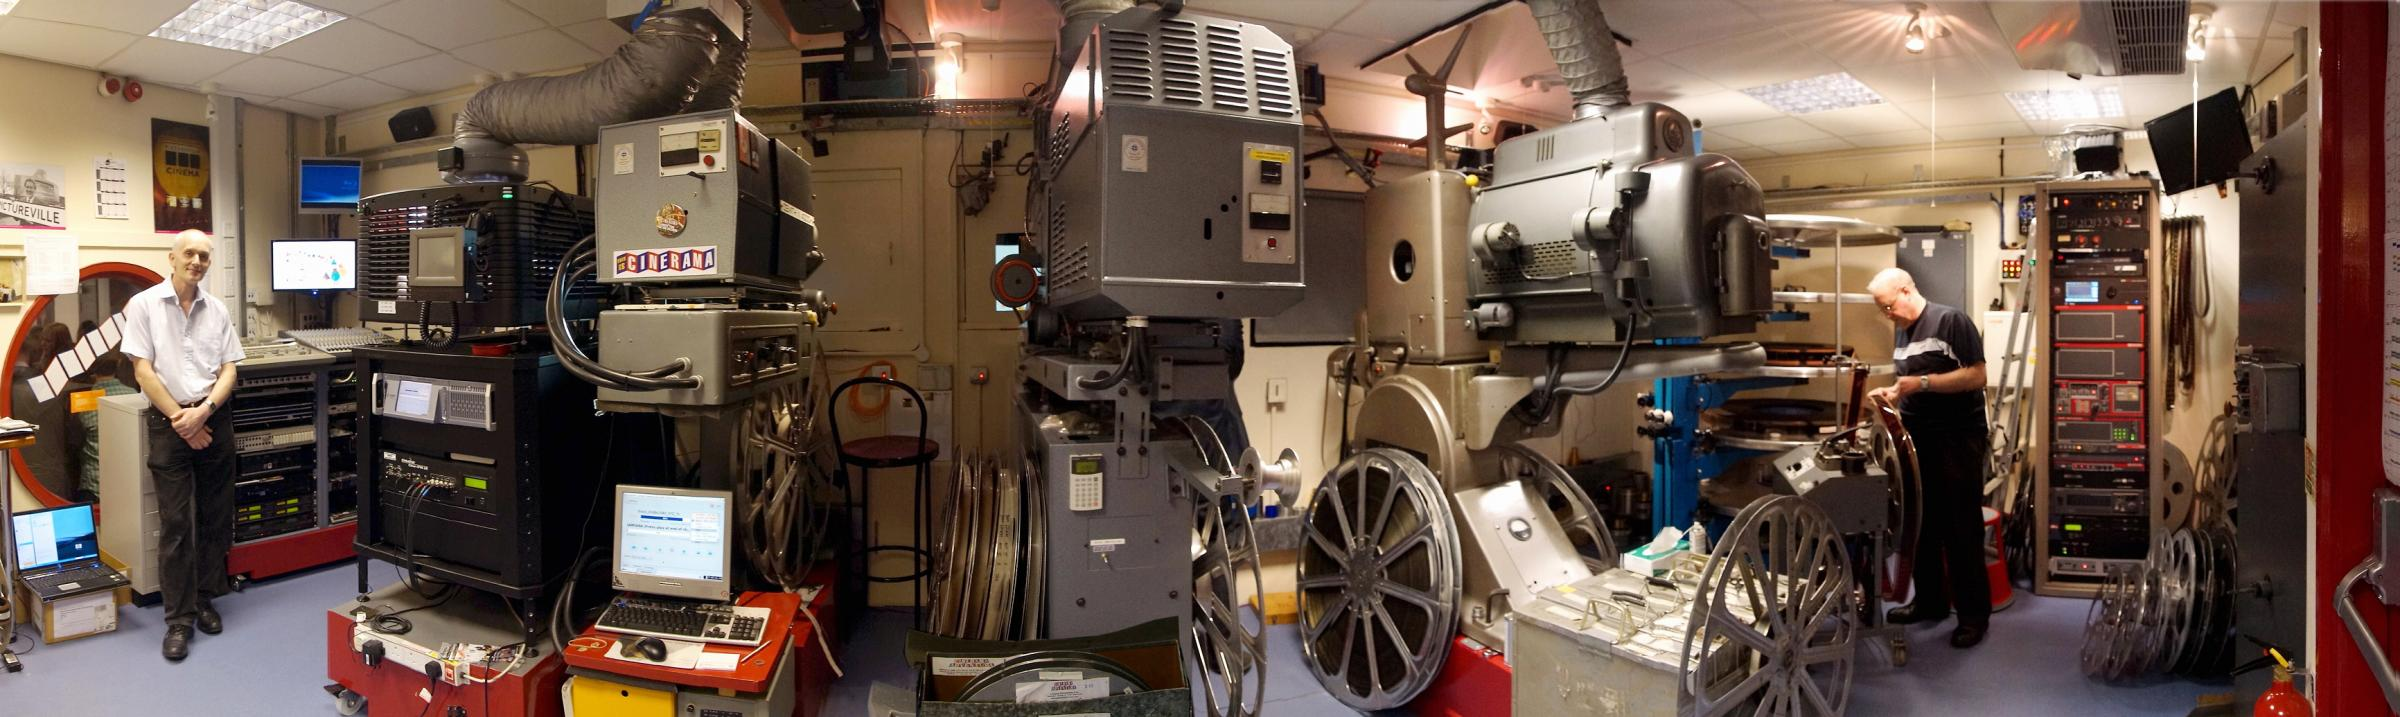 The projection room at the Cinerama cinema at the National Museum in Bradford